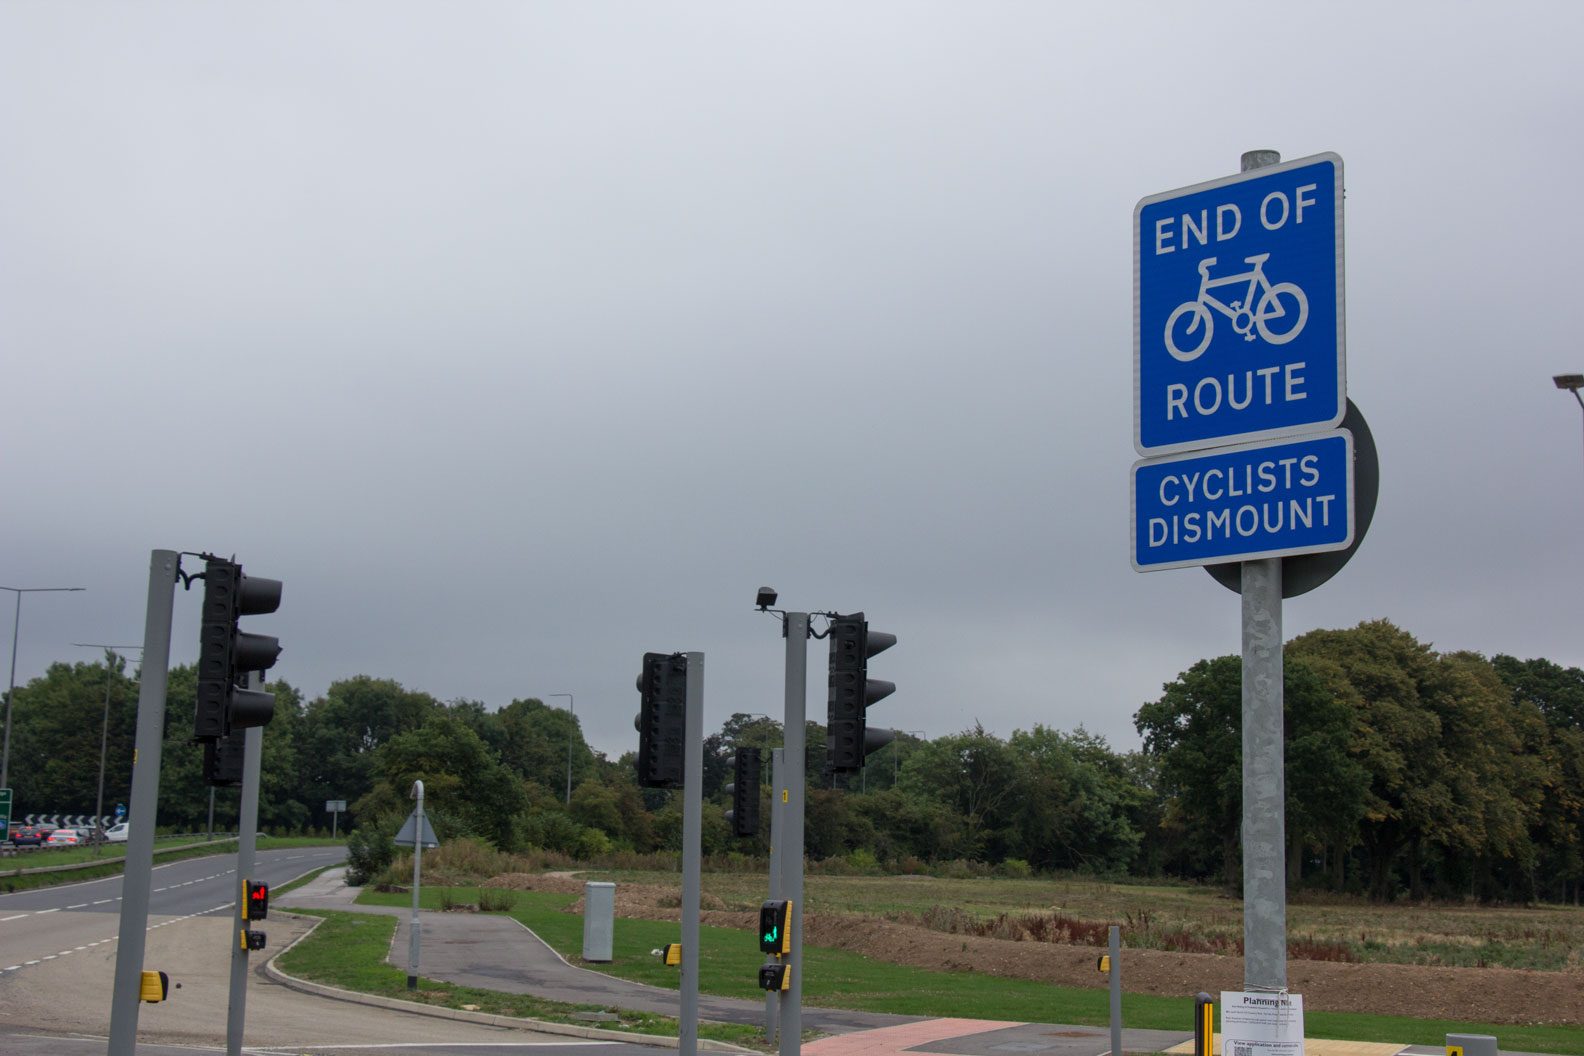 Cyclists dismount sign, Bridgehead Business Park